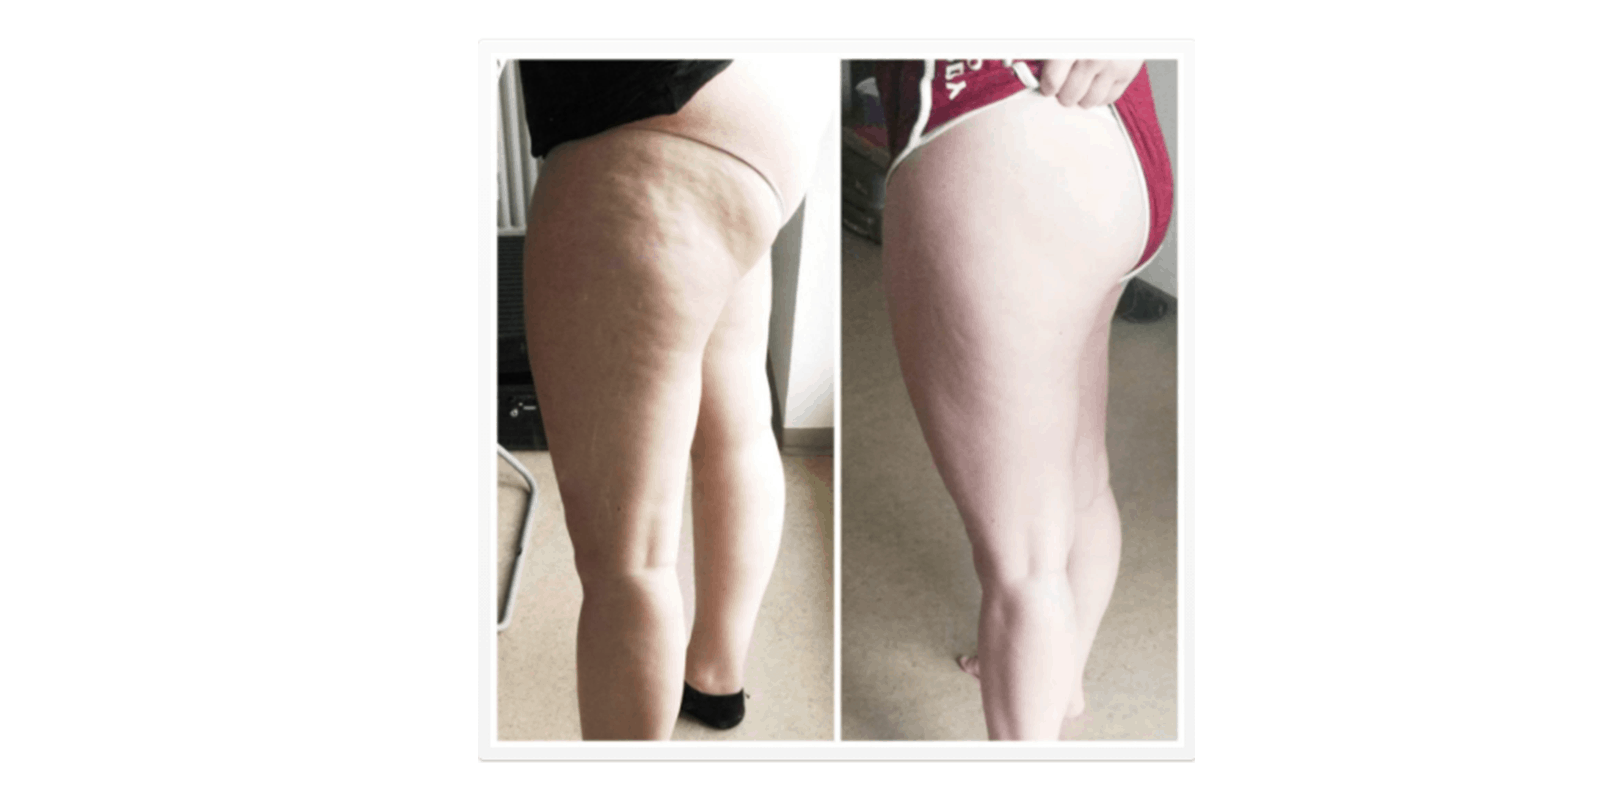 My Cellulite Solution results